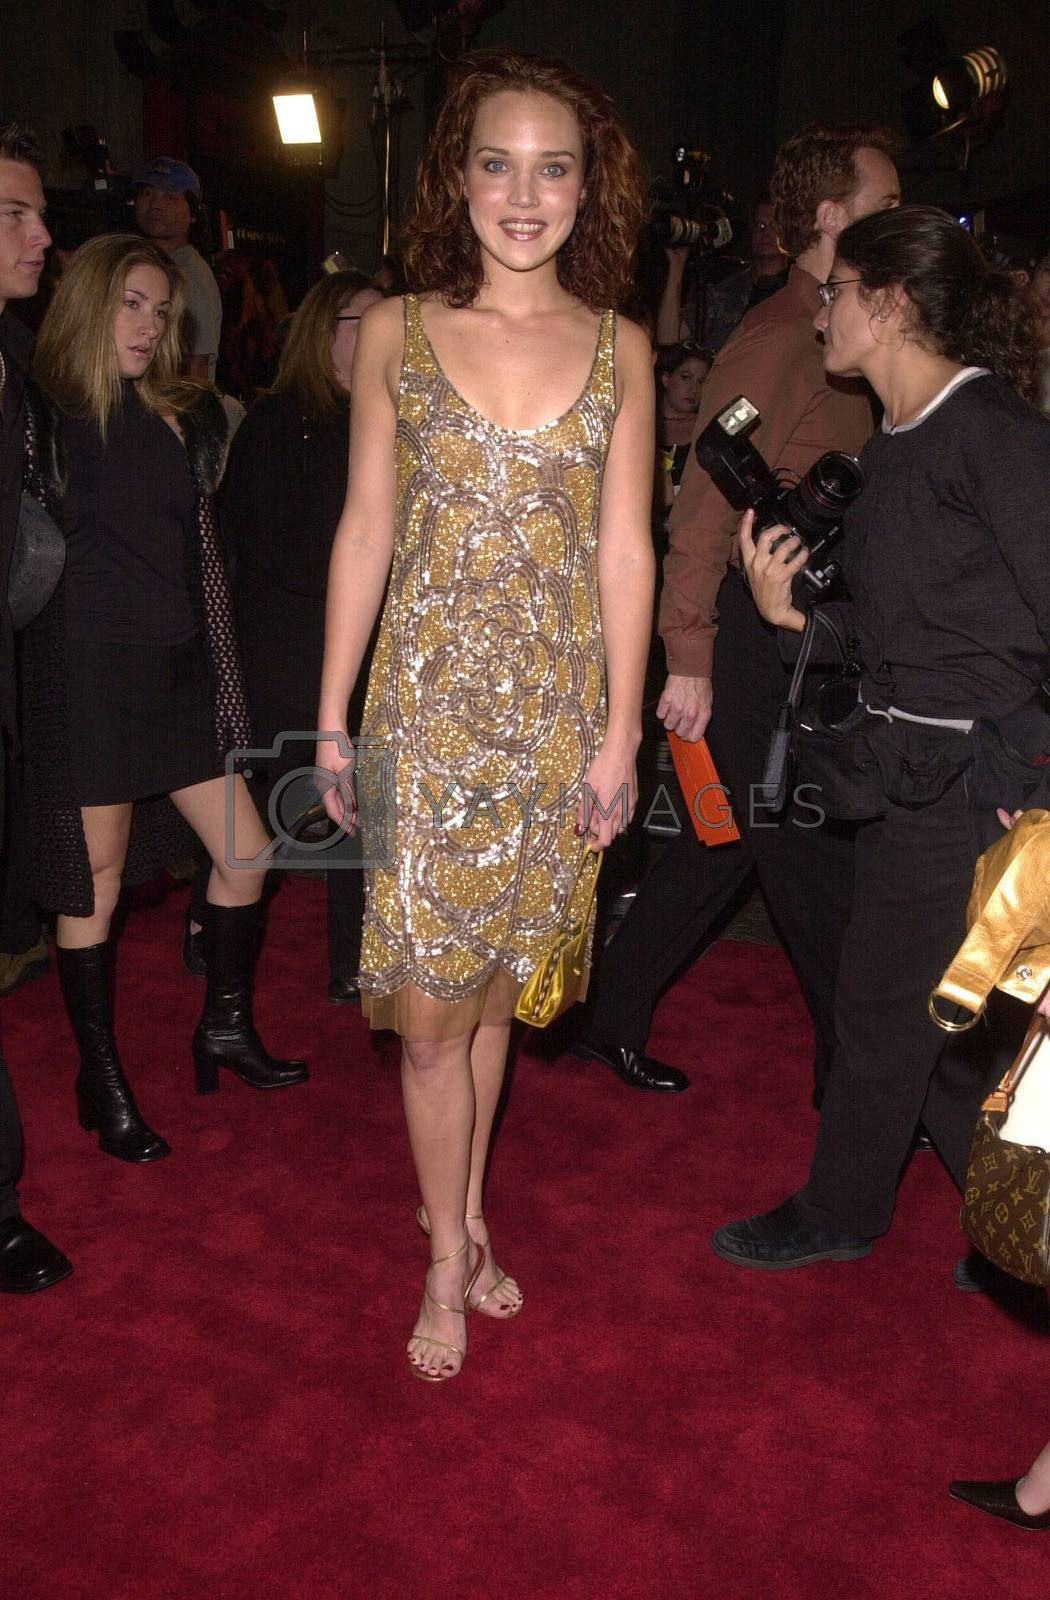 """Erica Leerhsen at the premiere of Artisan Entertainment's """"BLAIR WITCH 2: Book Of Shadows"""" at the Chinese Theater, Hollywood, 10-23-00"""